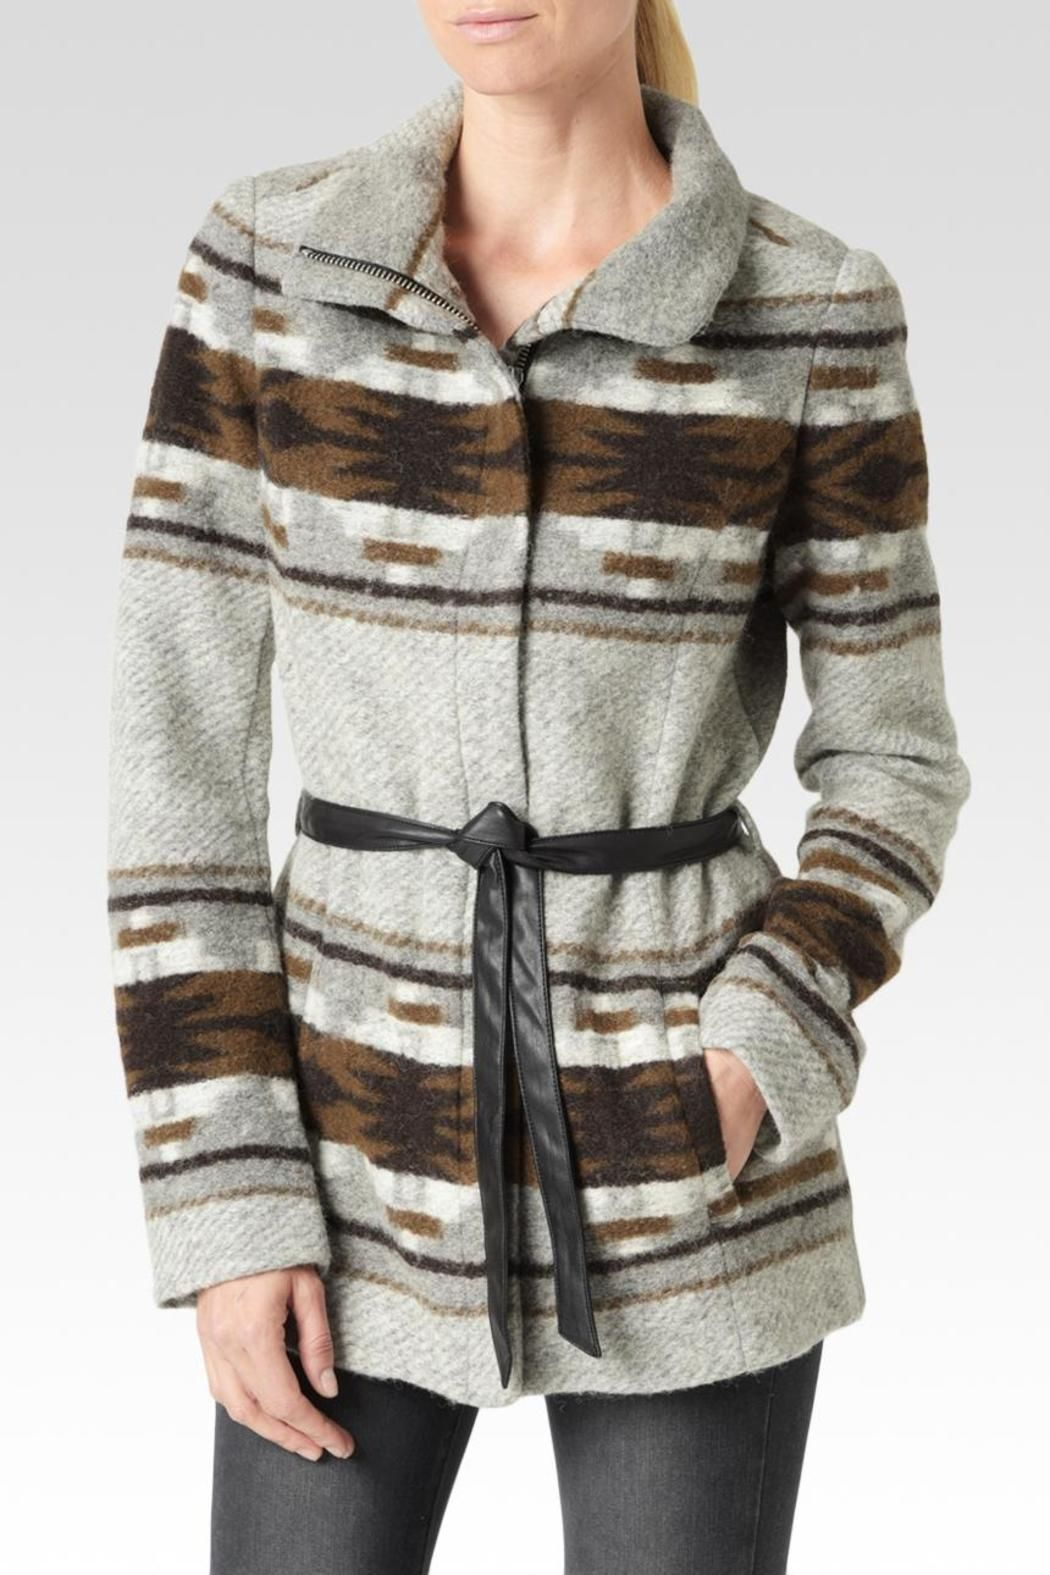 This funnel collar coat features a Custard and Dark Brown mojave-inspired border print on a cozy wool blend fabric. Finished with an optional leather sash belt, this fall go-to hits mid thigh and is tailored for a more fitted, polished look.   Haylynn Coat by Paige. Clothing - Jackets, Coats & Blazers - Coats Hudson Valley, New York